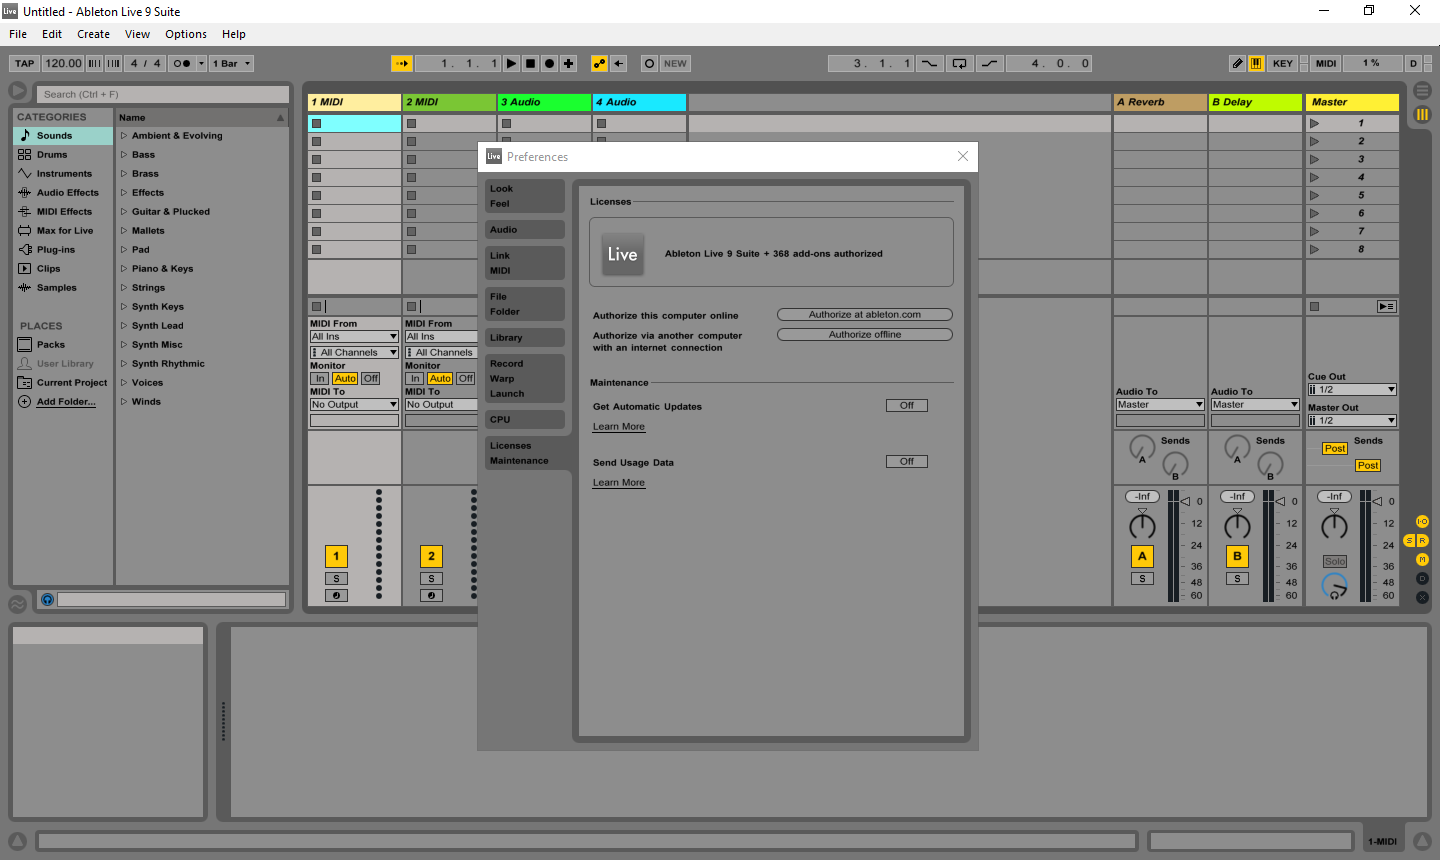 how to use ableton live 9 suite